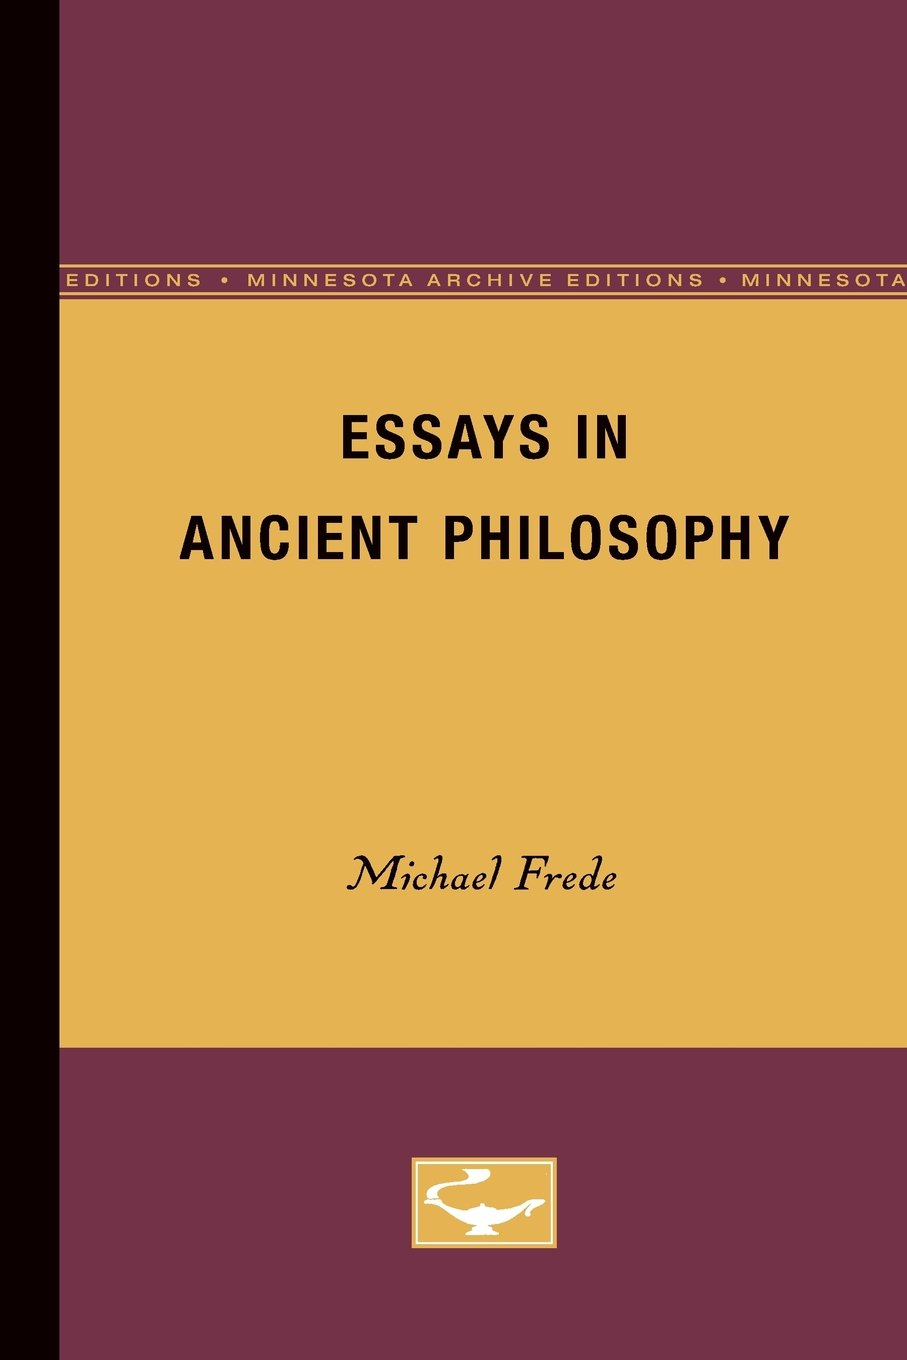 essays in ancient philosophy michael frede amazon essays in ancient philosophy michael frede 9780816612758 com books